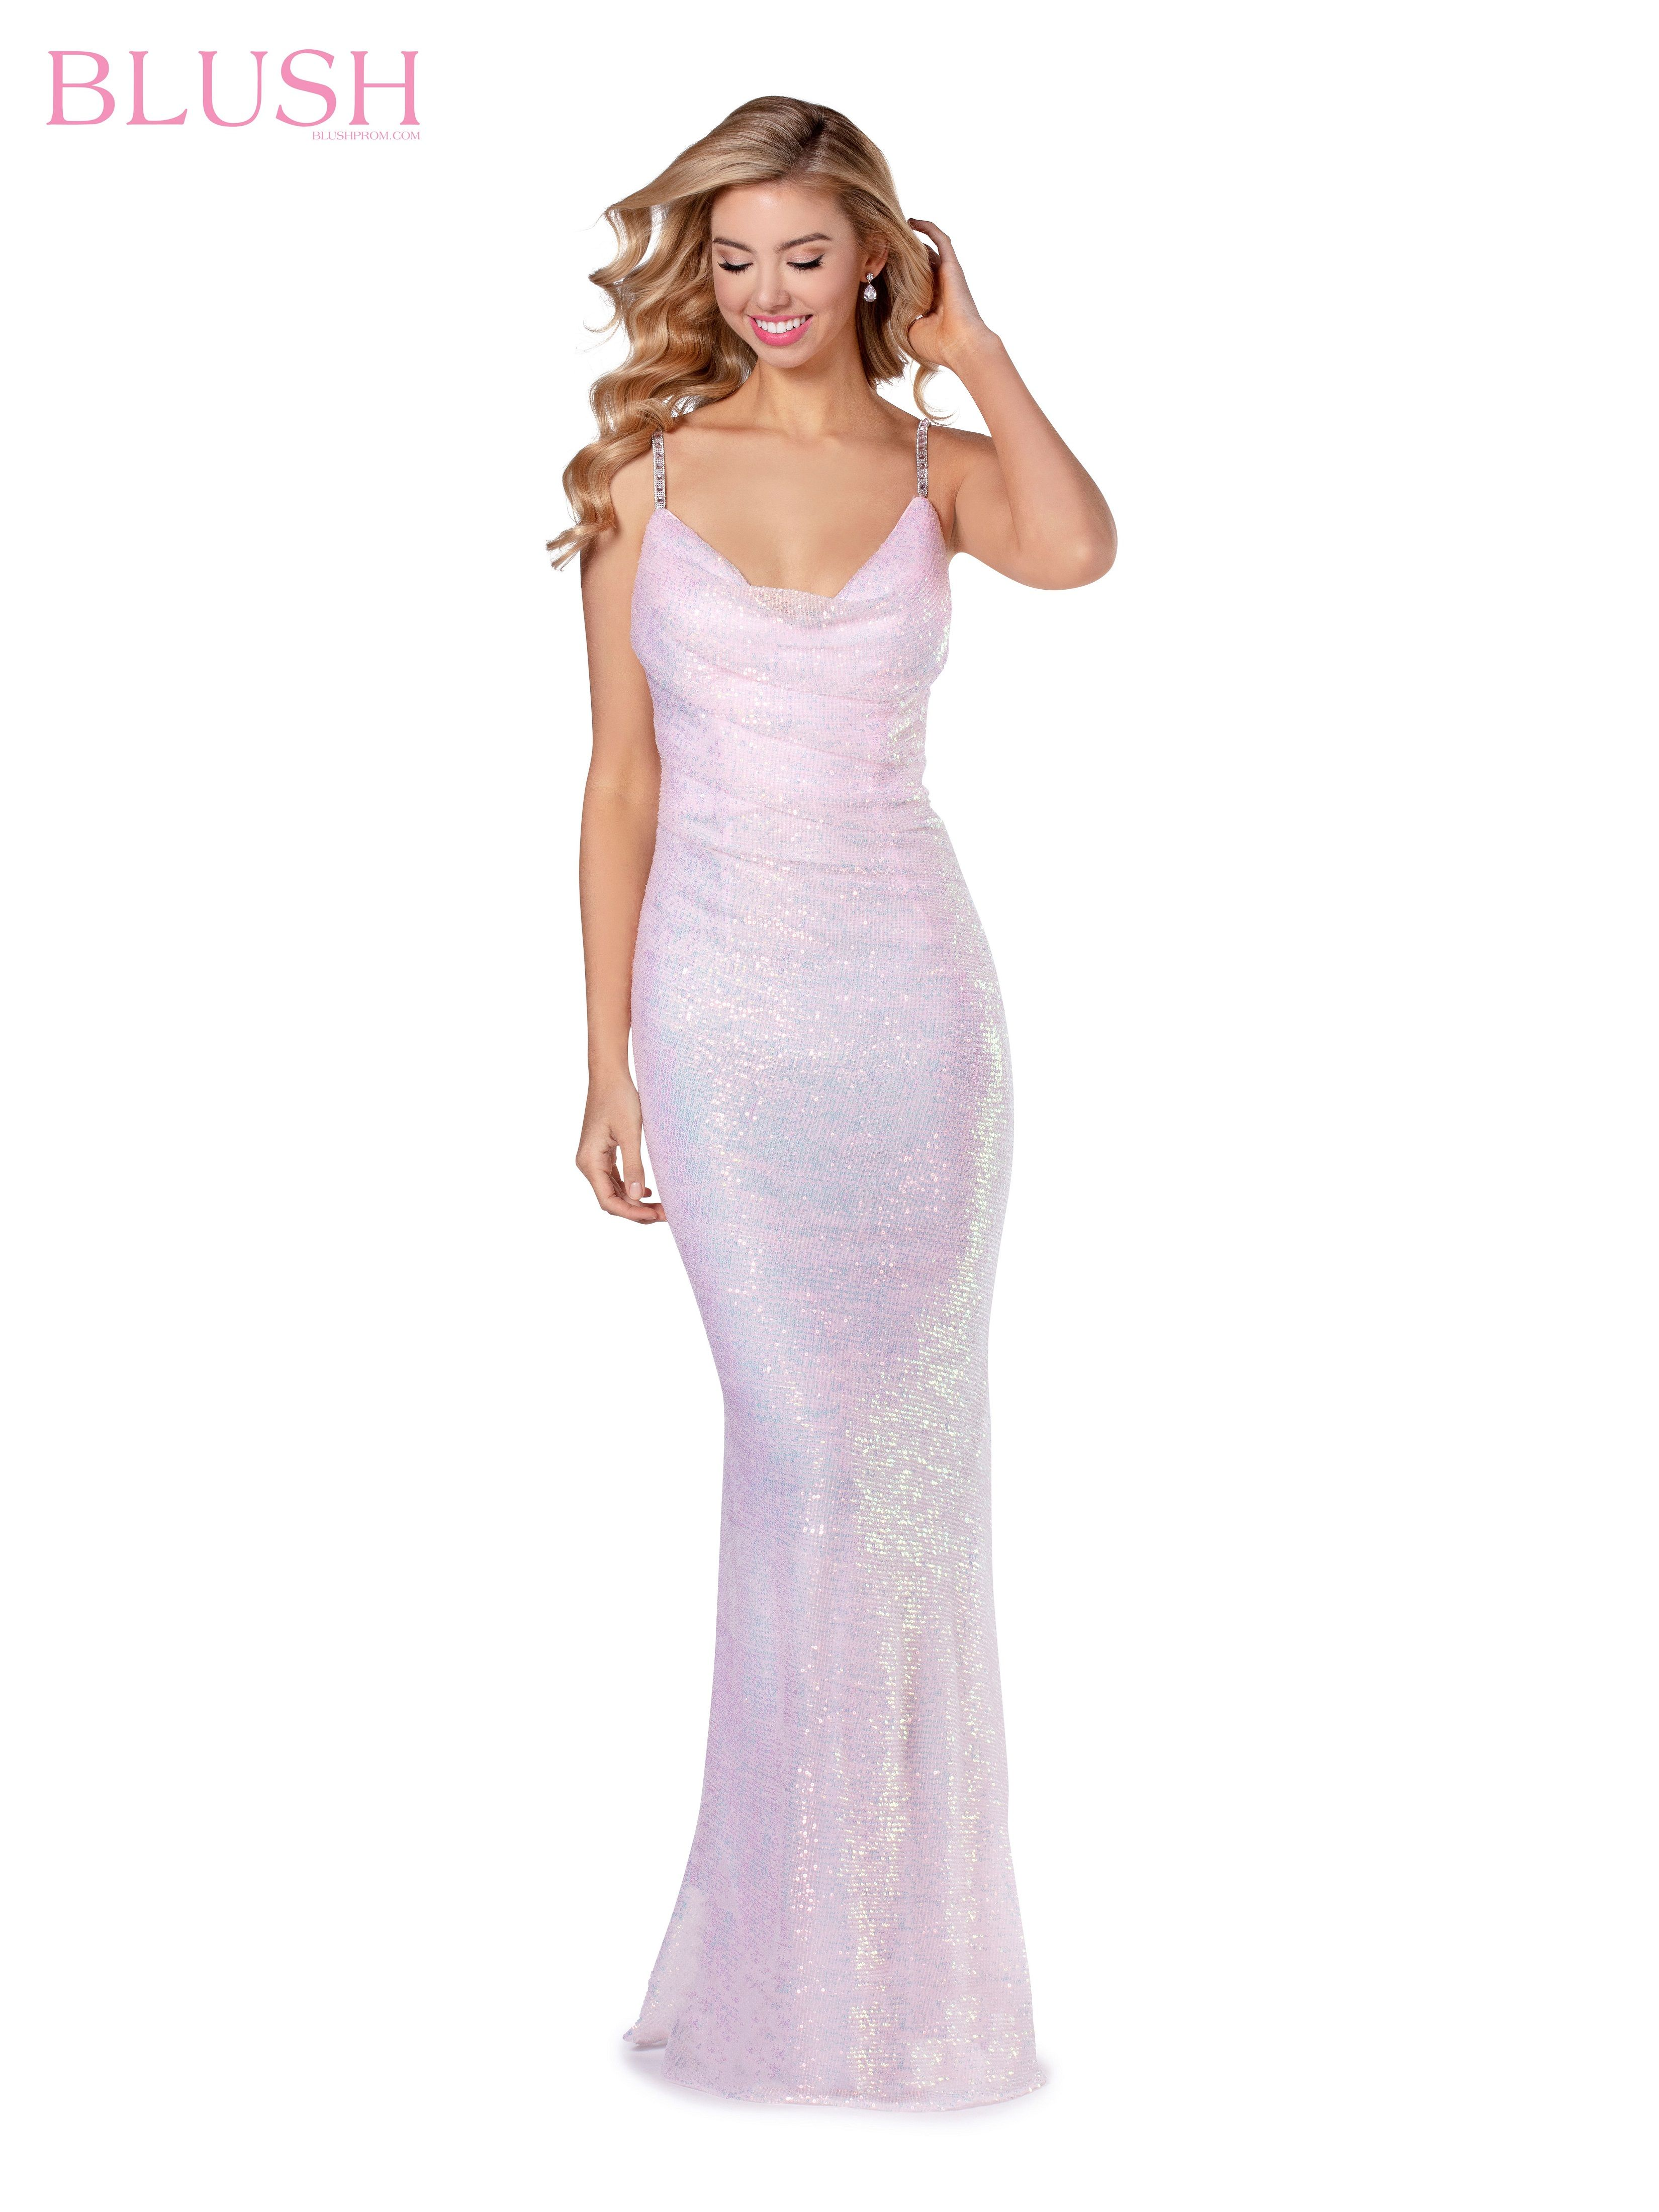 Blush Prom Dresses Pink Ballgown Too Plus Size Formal Dresses Long Glass Slipper Formals 2020 Gowns In 2020 Blush Prom Dress Prom Dresses Blush Prom